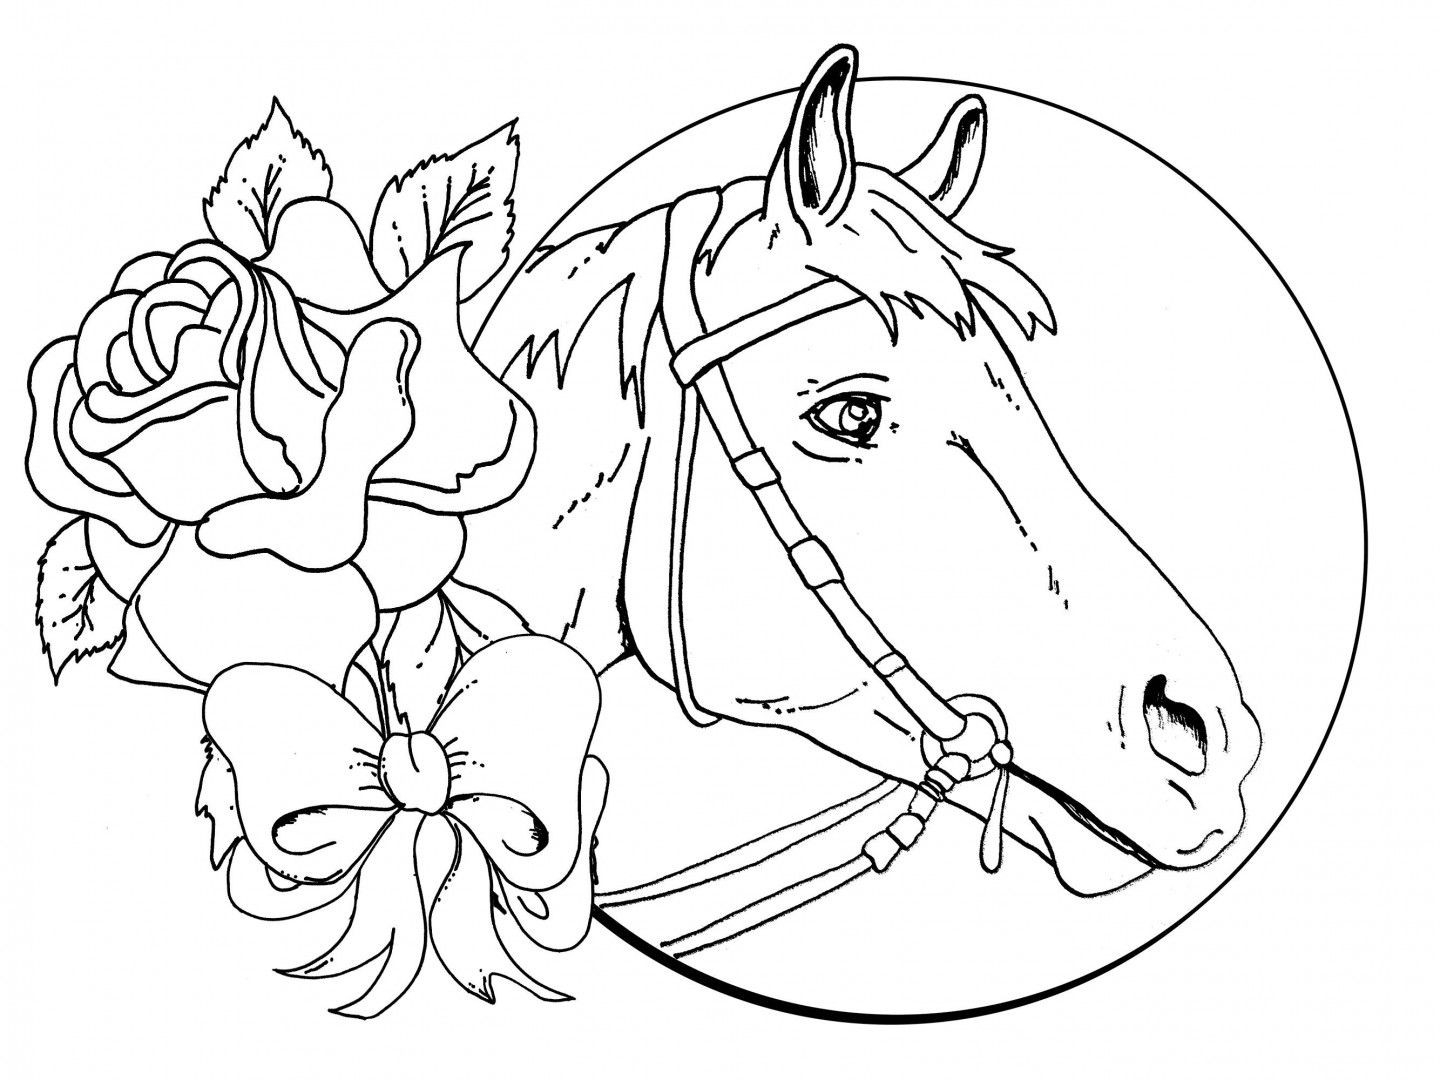 Coloring Pages For 10 Year Old Girls Coloring Pages 9 Year Old Printable Coloring Page For Kids